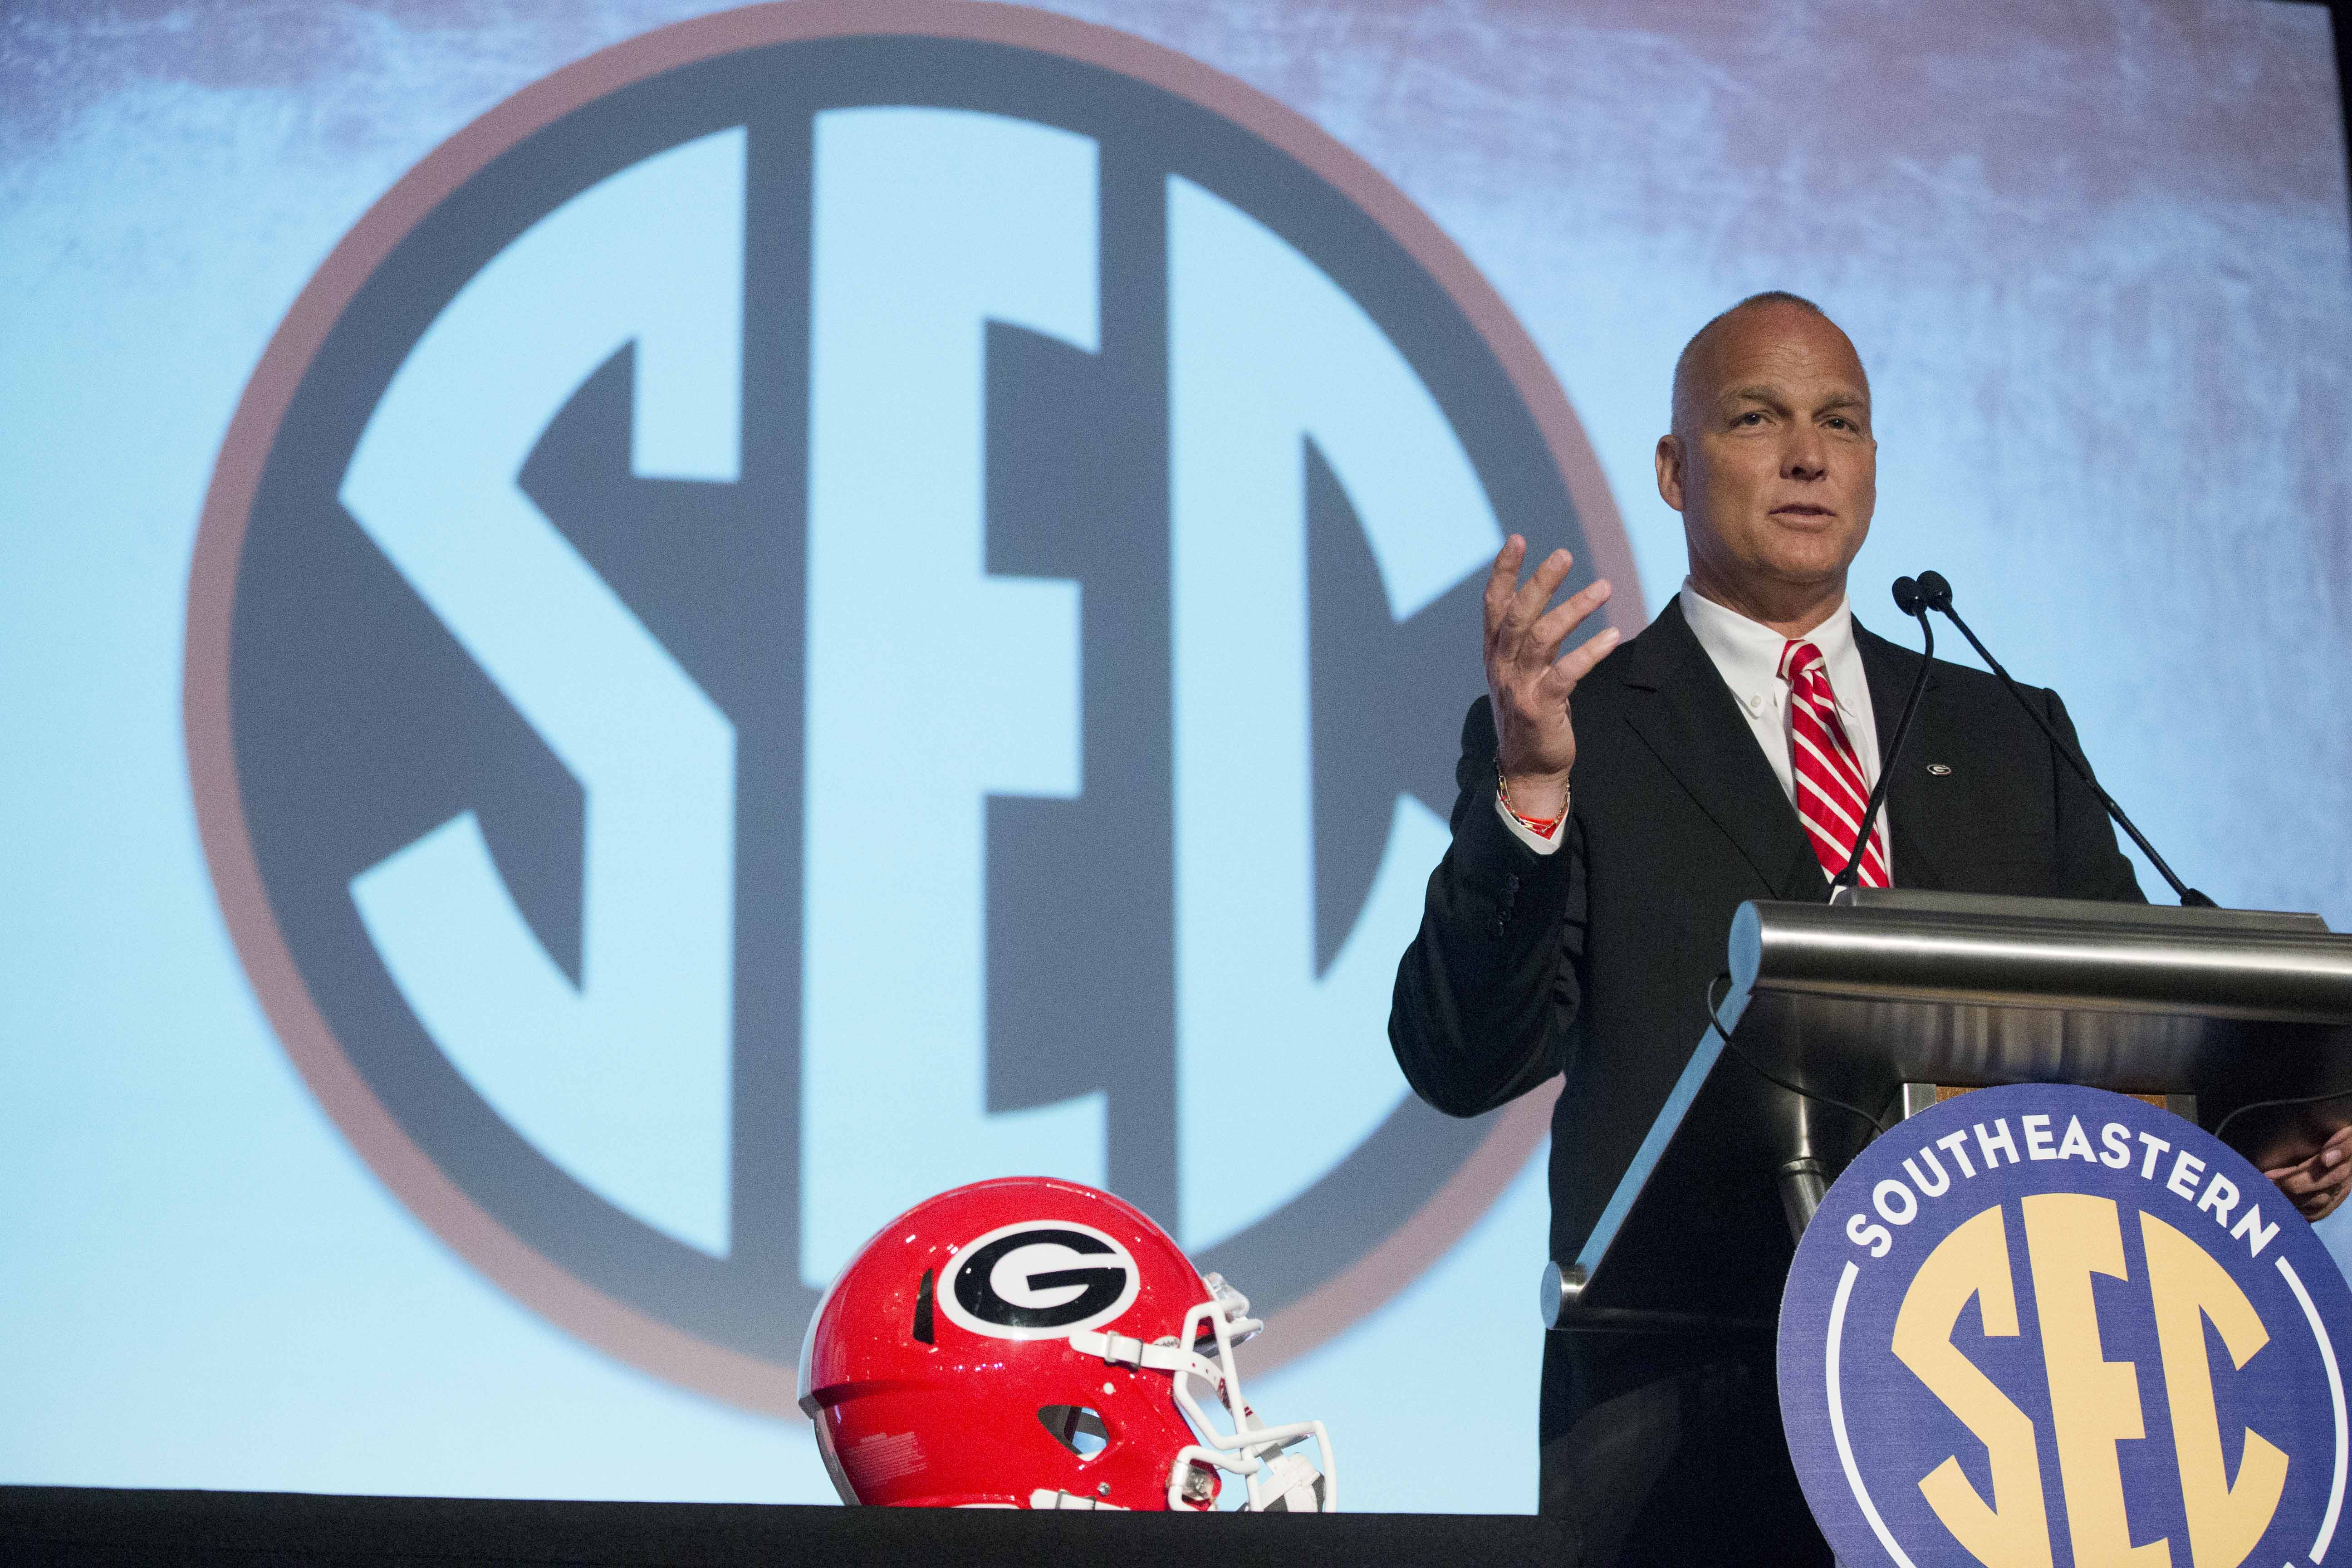 FILE - In this July 16, 2015, file photo, Georgia coach Mark Richt speaks to the media at the Southeastern Conference NCAA college football media days in Hoover, Ala. Richt must pick a new starting quarterback. Even with that big unknown, there is great a